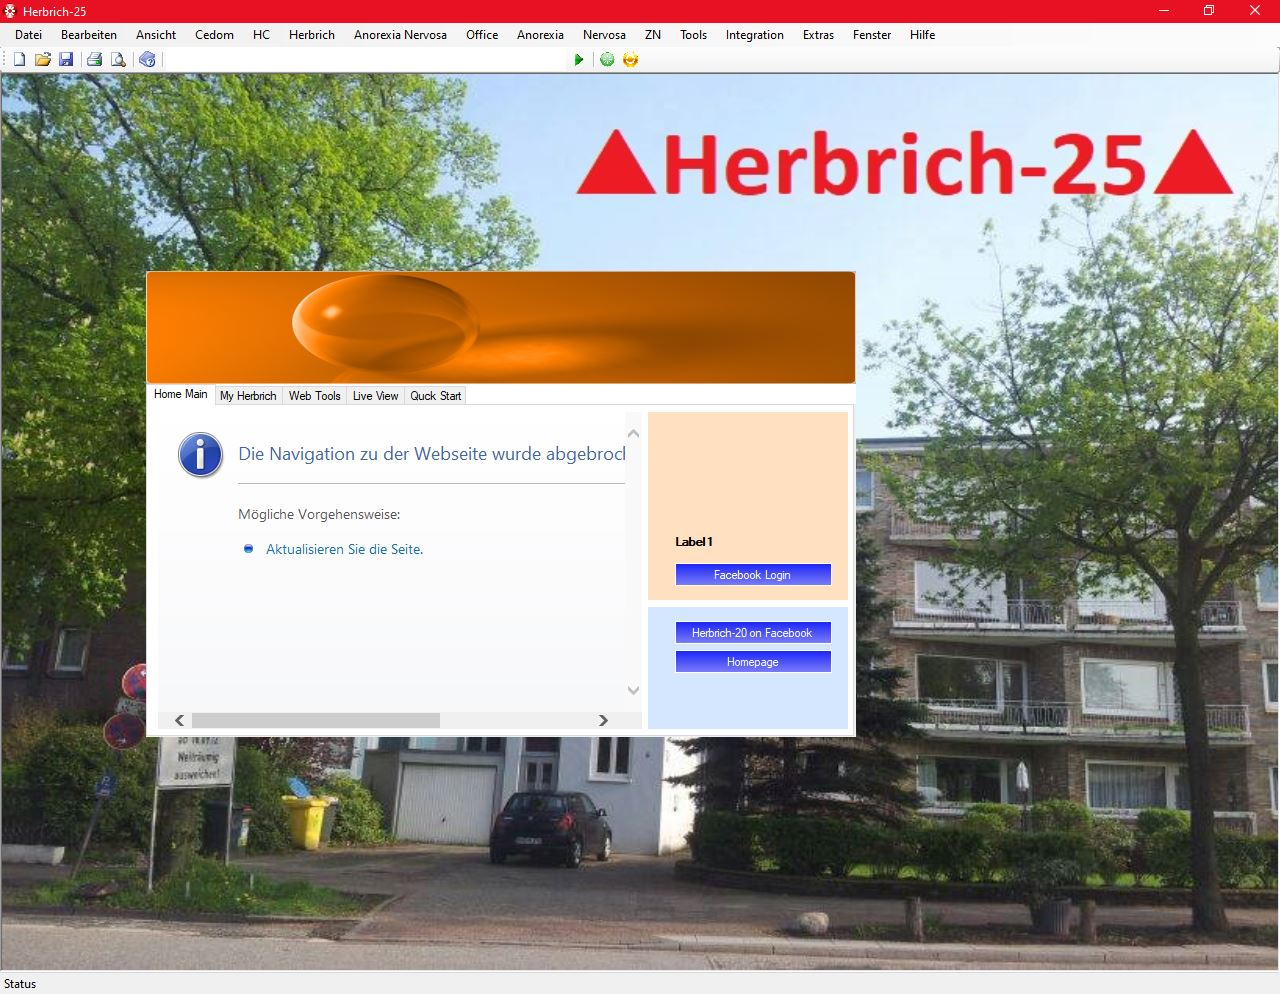 Herbrich-25 Homescreen